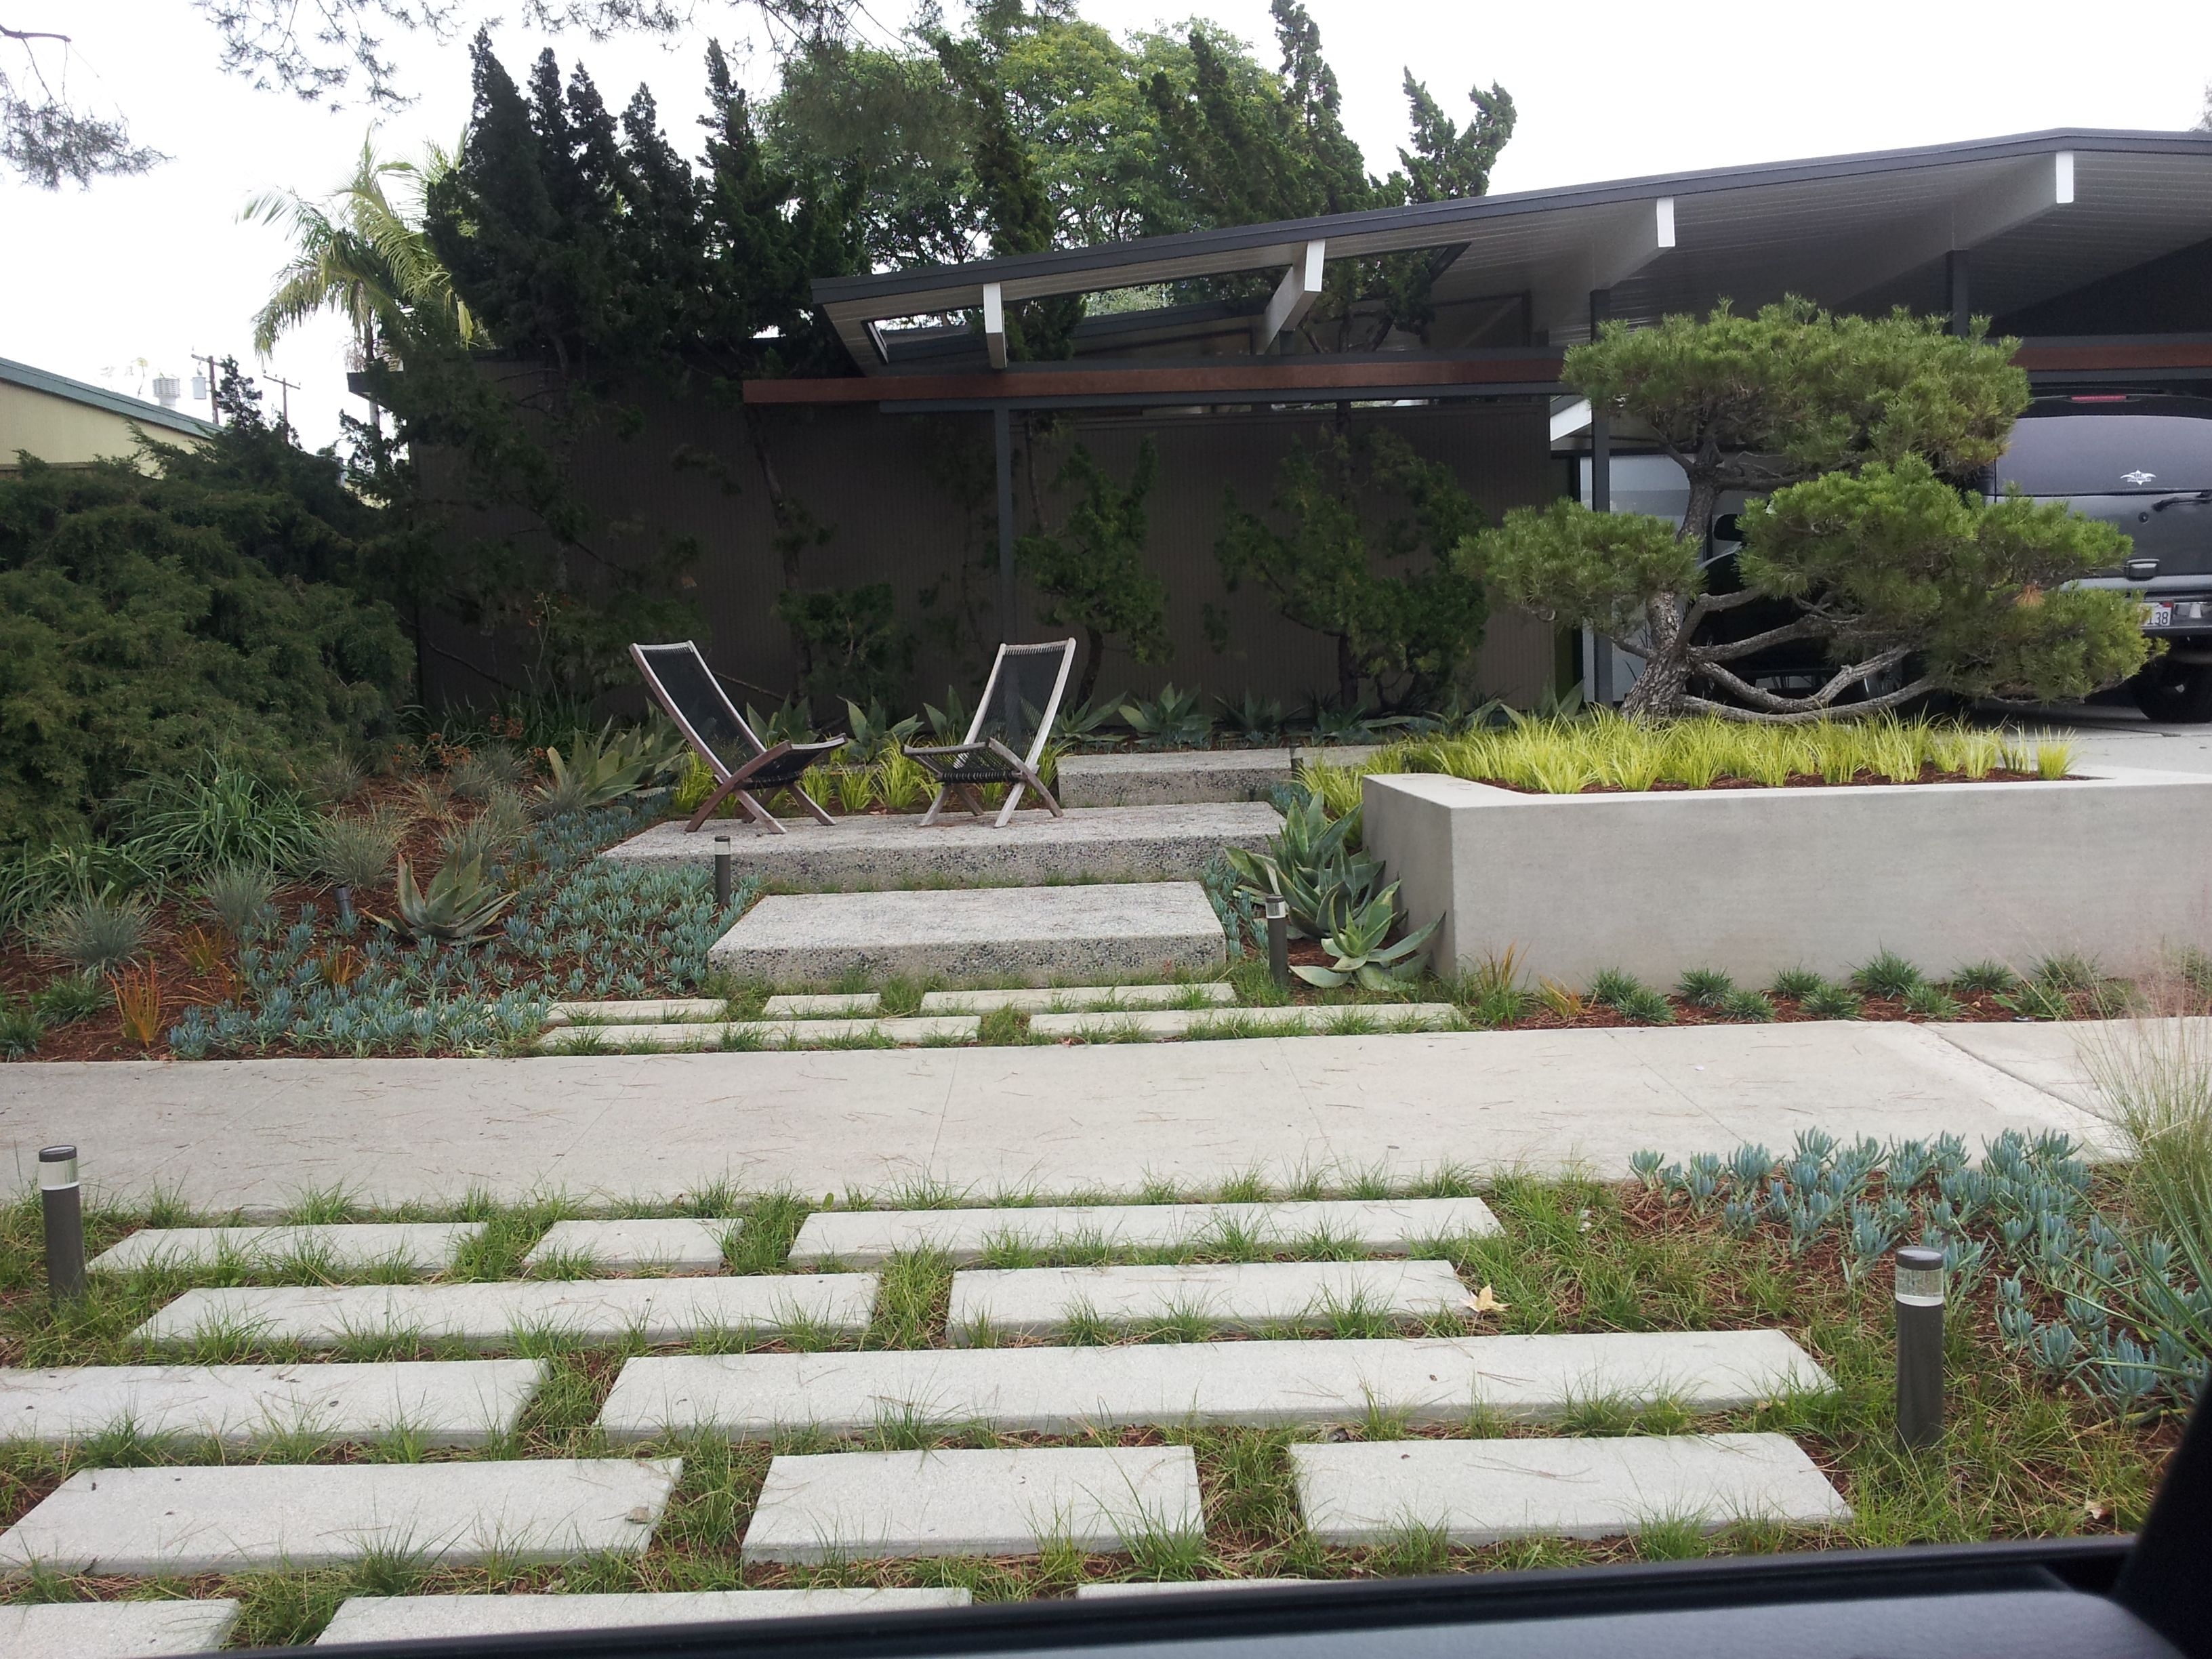 Eichler home in Orange. I like the staggered concrete pads for a wider  walkway. Tear out front yard path? Or recycle broken peices?